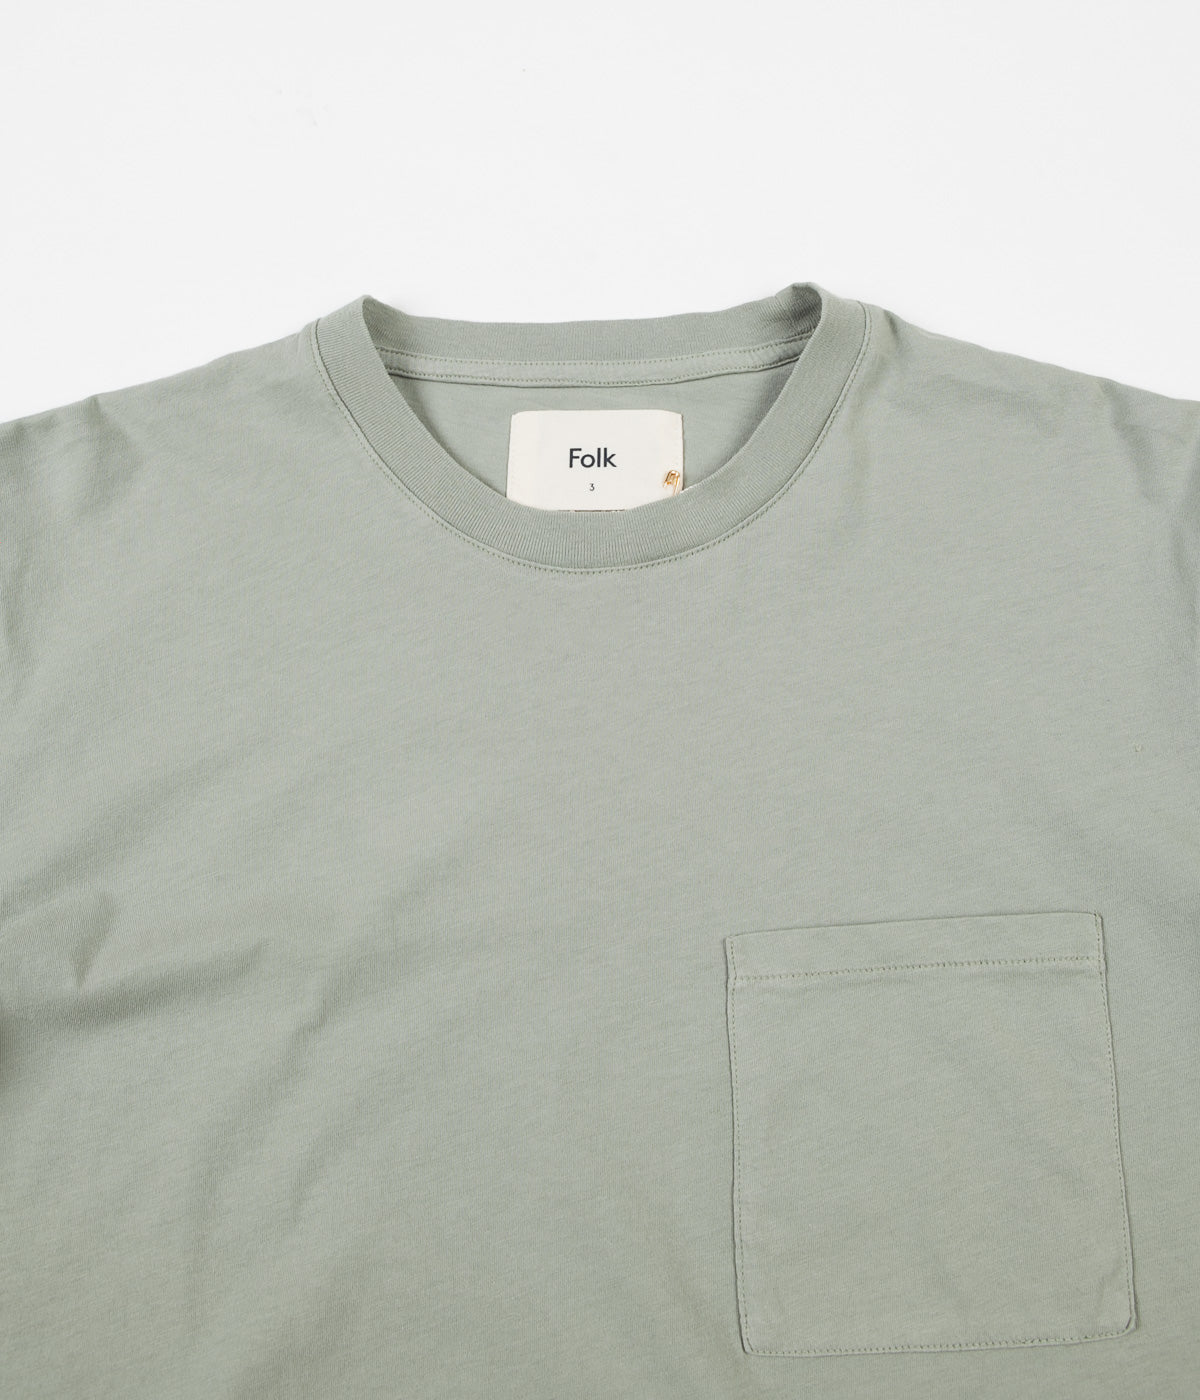 Folk Pocket Assembly T-Shirt - Washed Green